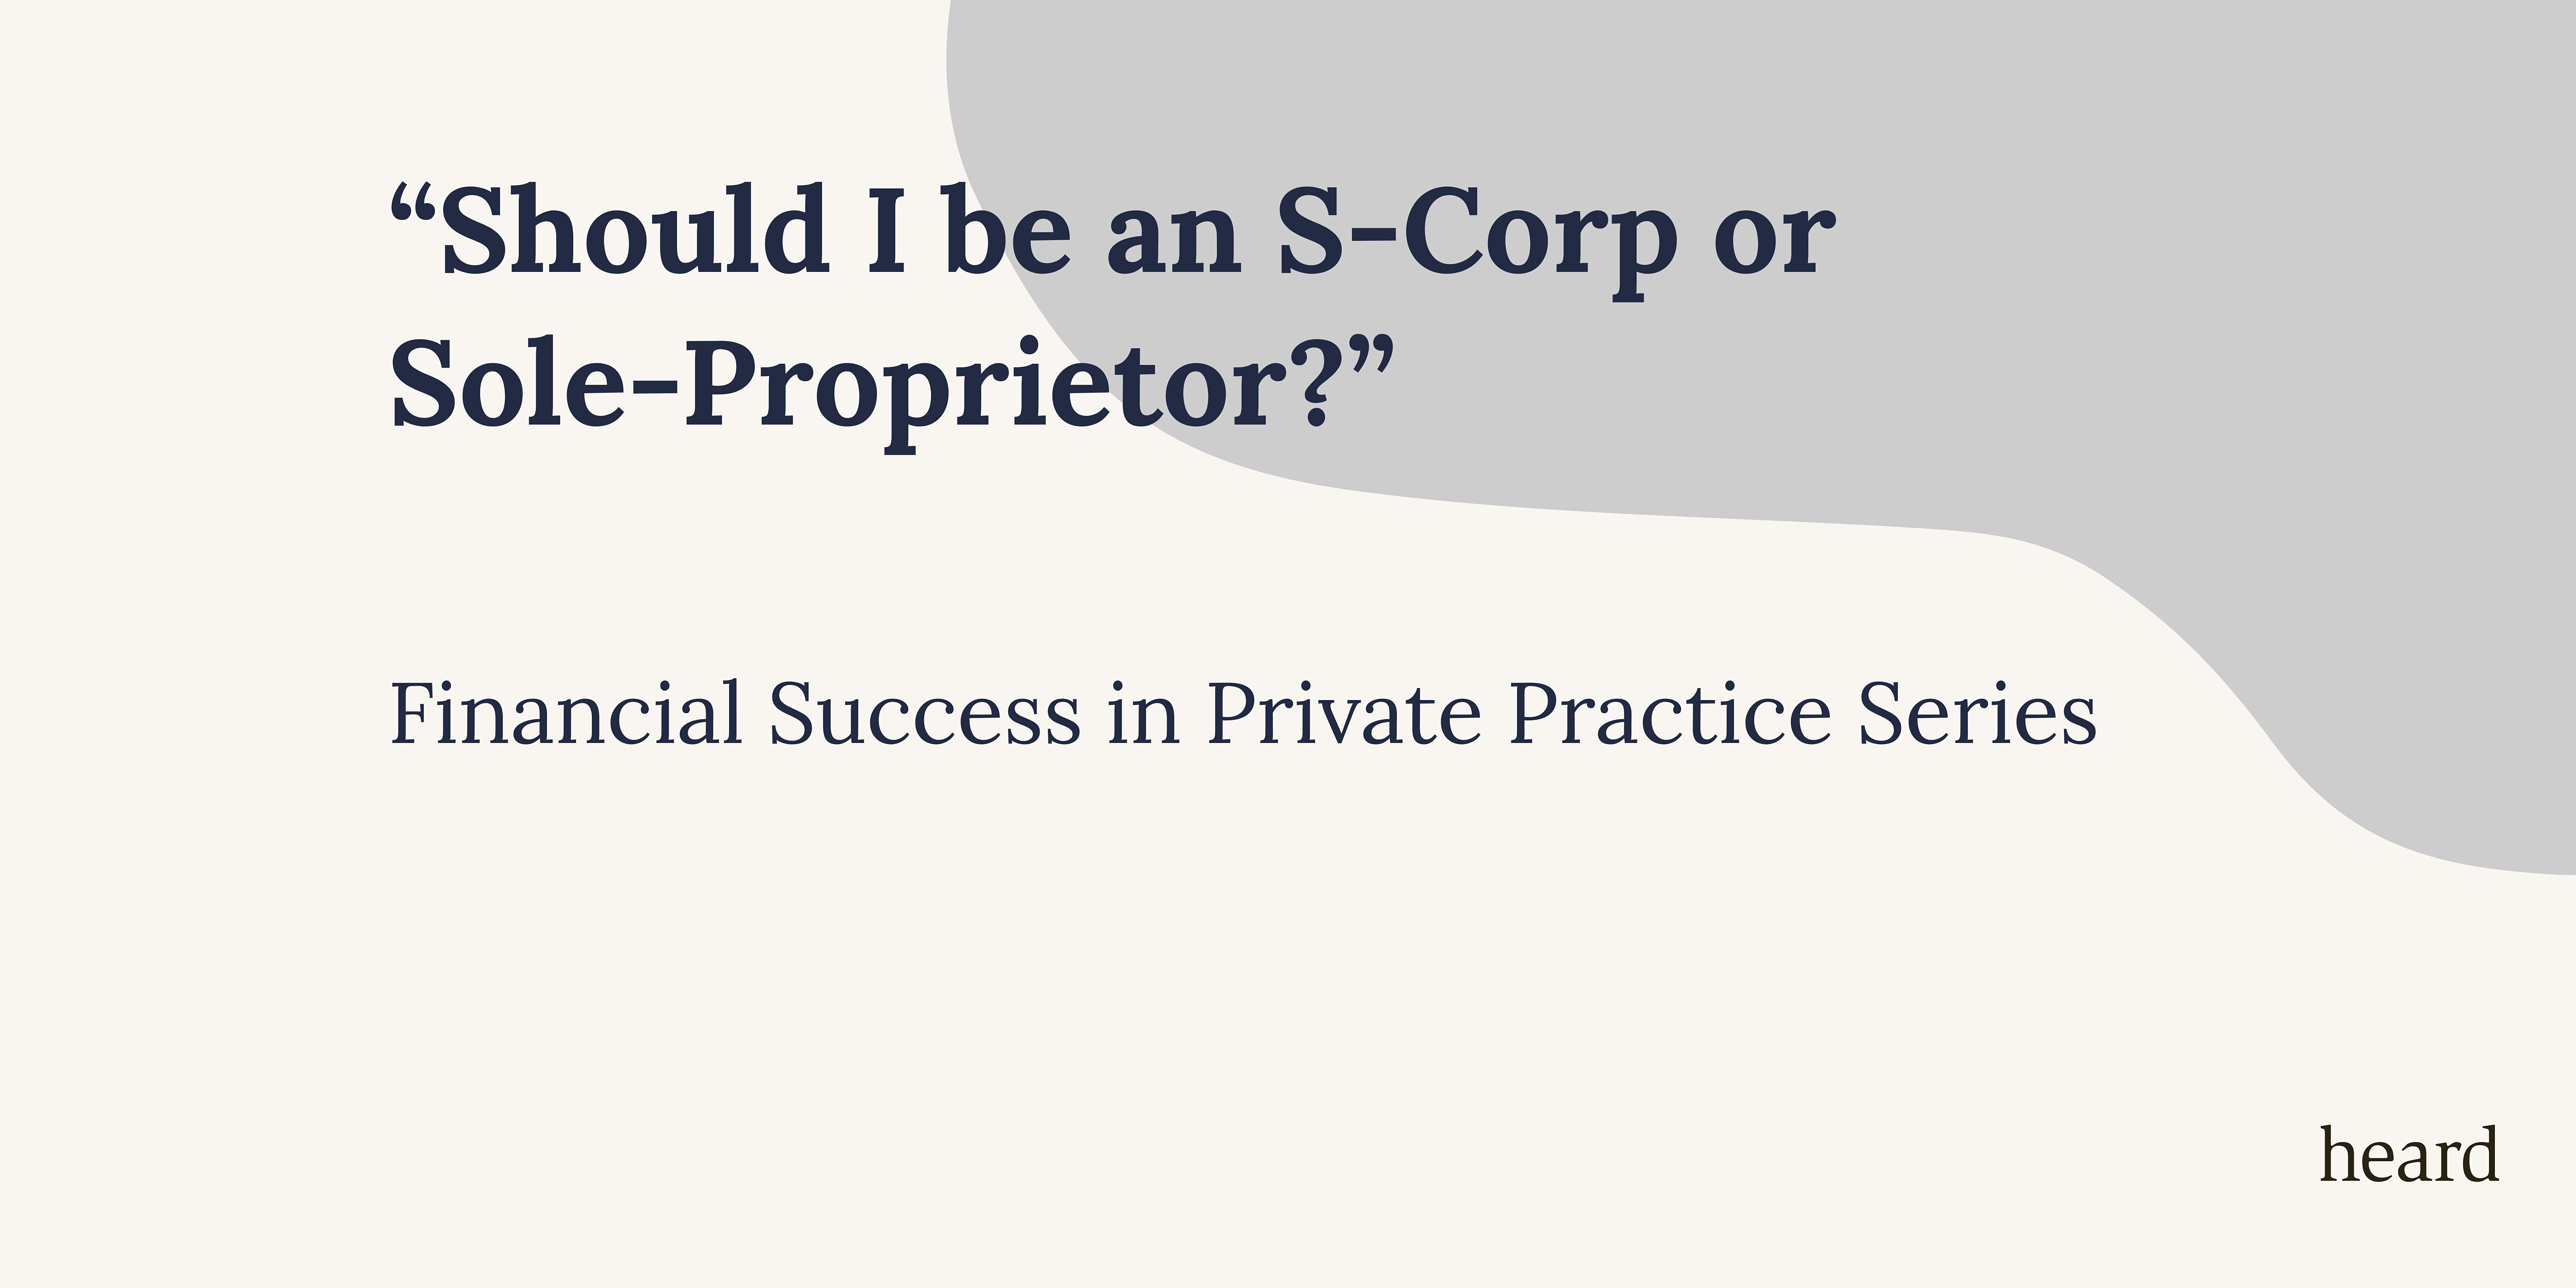 Financial Success Series: Should I be an S-Corp or a Sole-Proprietor?